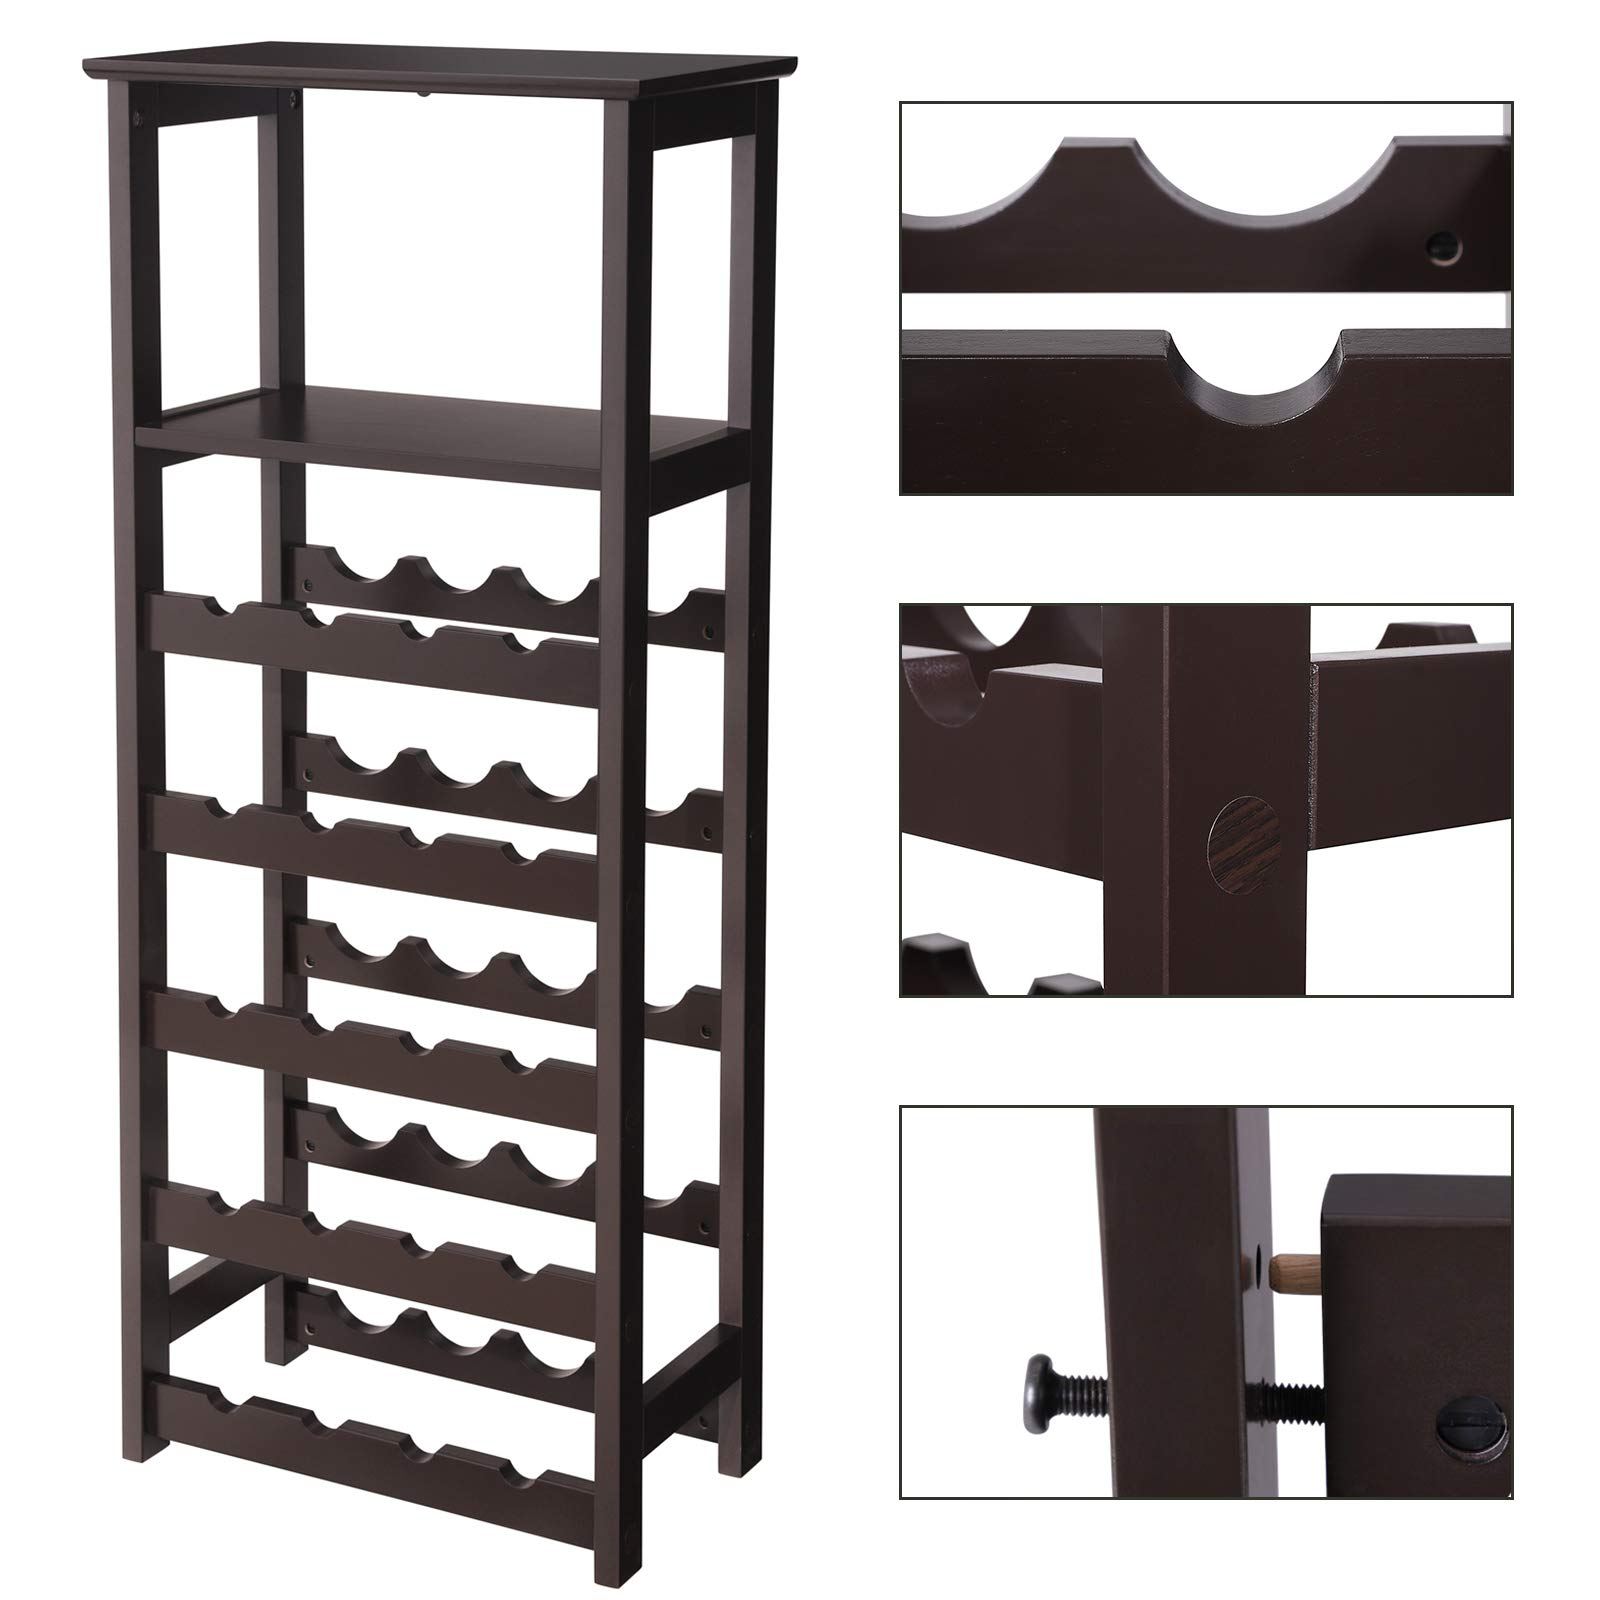 VASAGLE 20 Wooden Wine Rack, Free Standing Bottles Display Storage Shelf, with 2 Slatted Shelves,18.4''L × 10.4''W × 42.9''H, Espresso ULWR03BR by VASAGLE (Image #5)